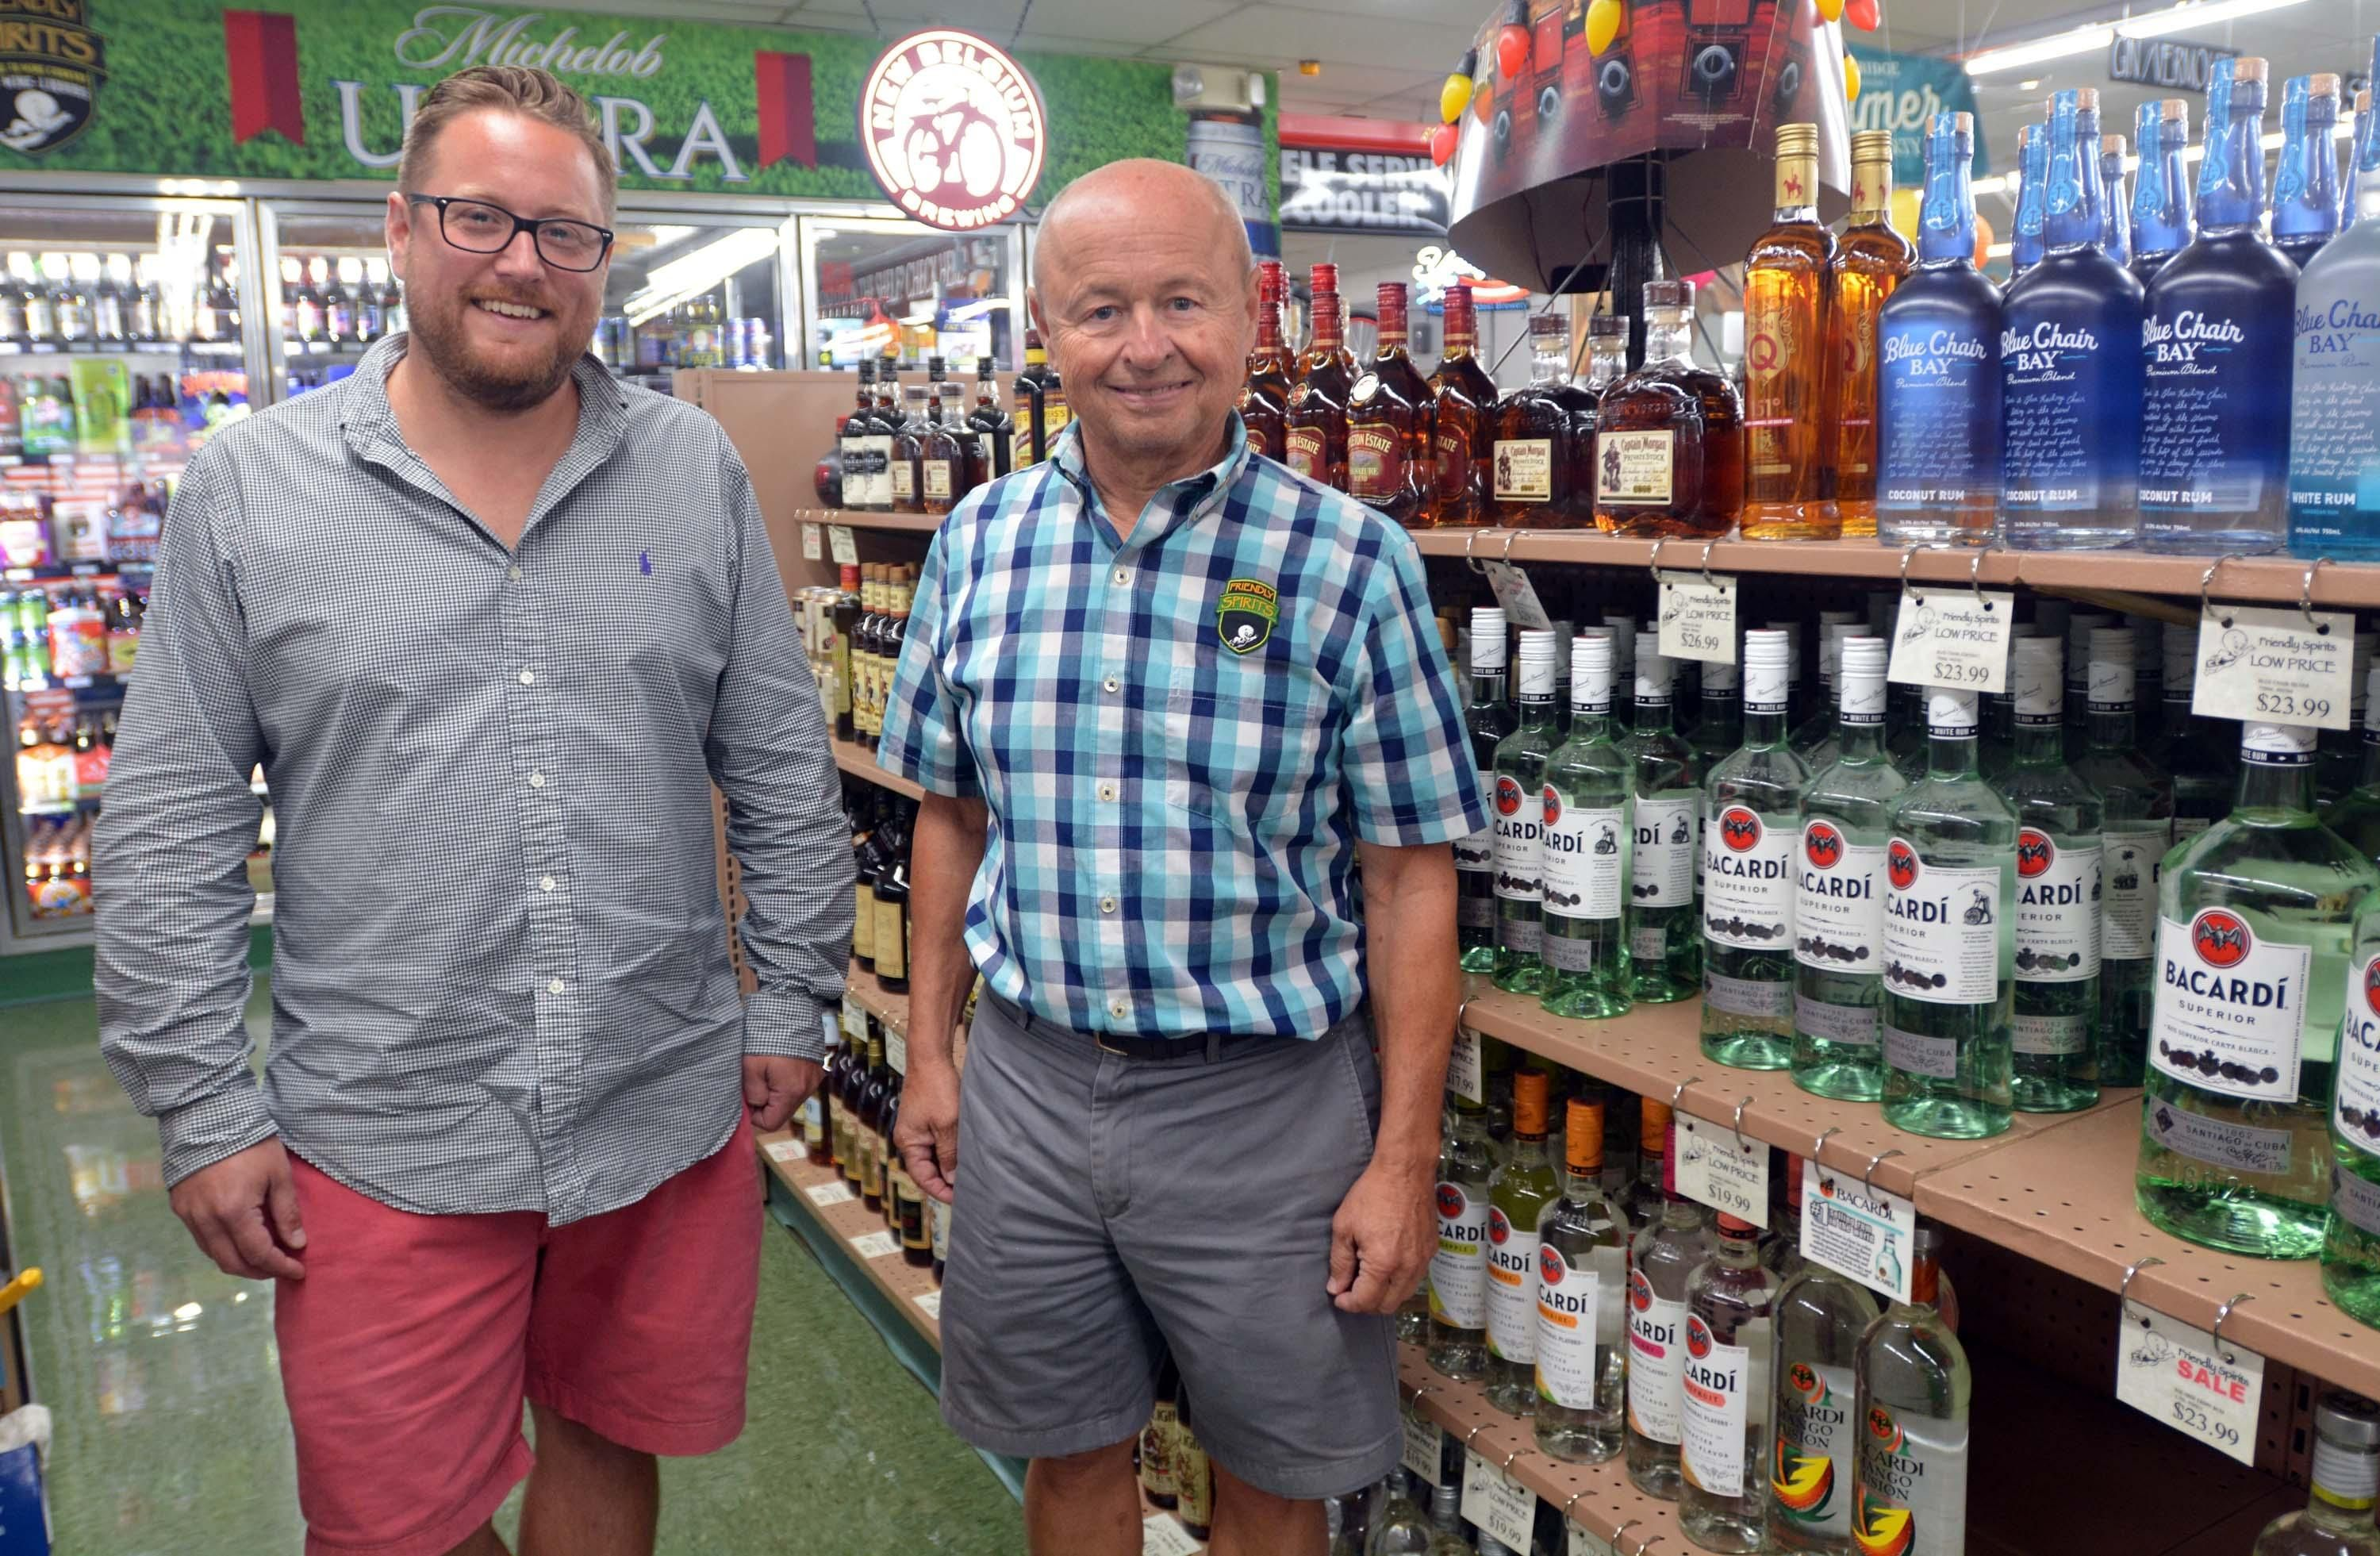 Region's package store owners Eliminating pricing laws